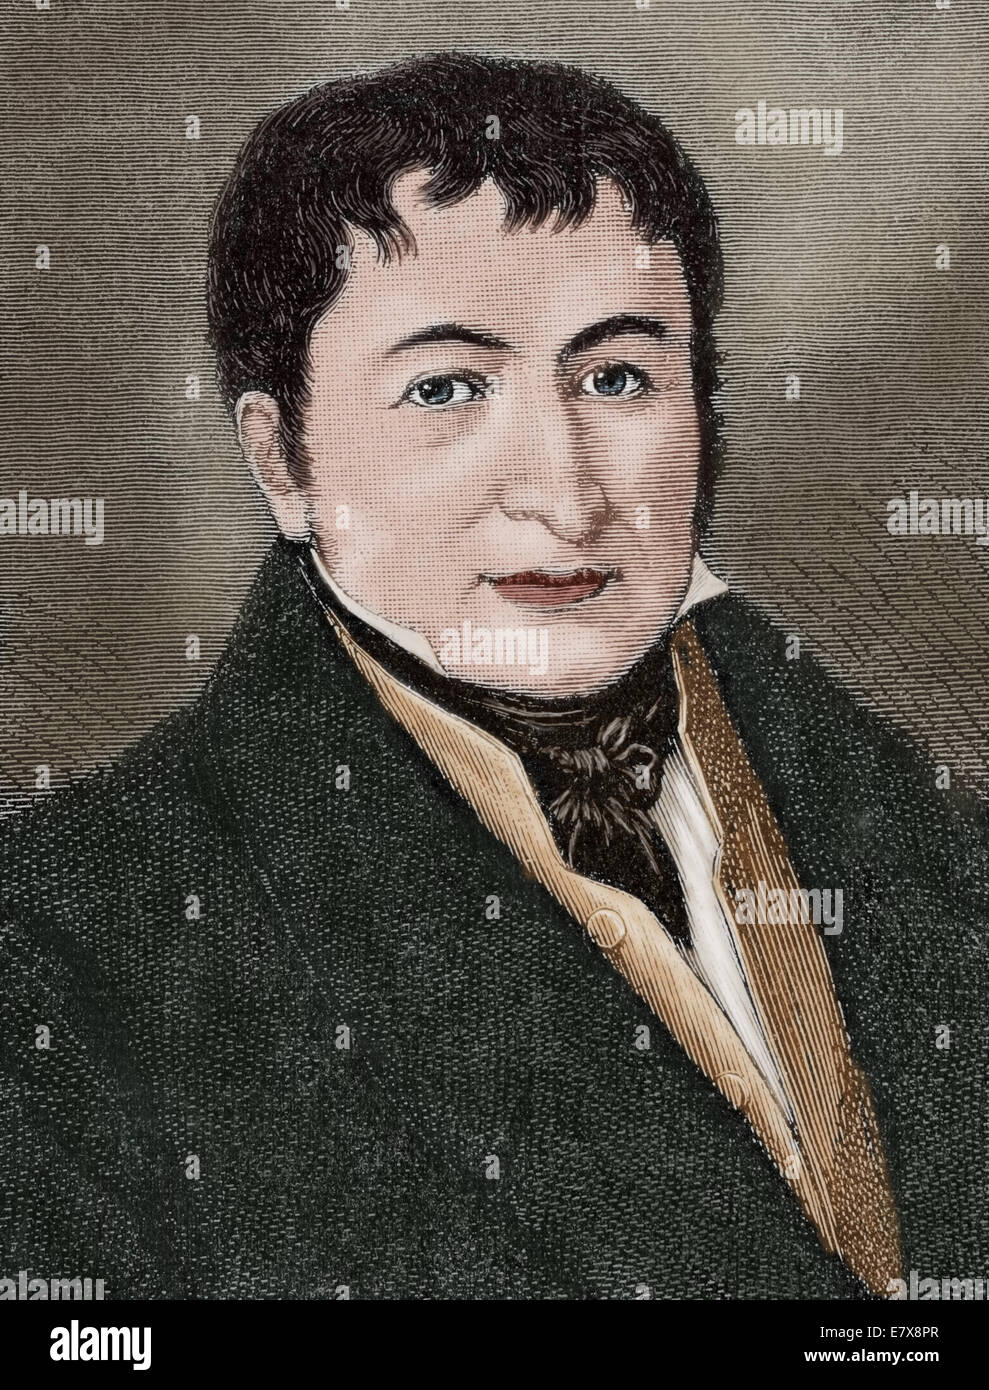 Friedrich Koenig (1774-1833). German Inventor. The Engraving in Illustration, 1883. Colored. - Stock Image